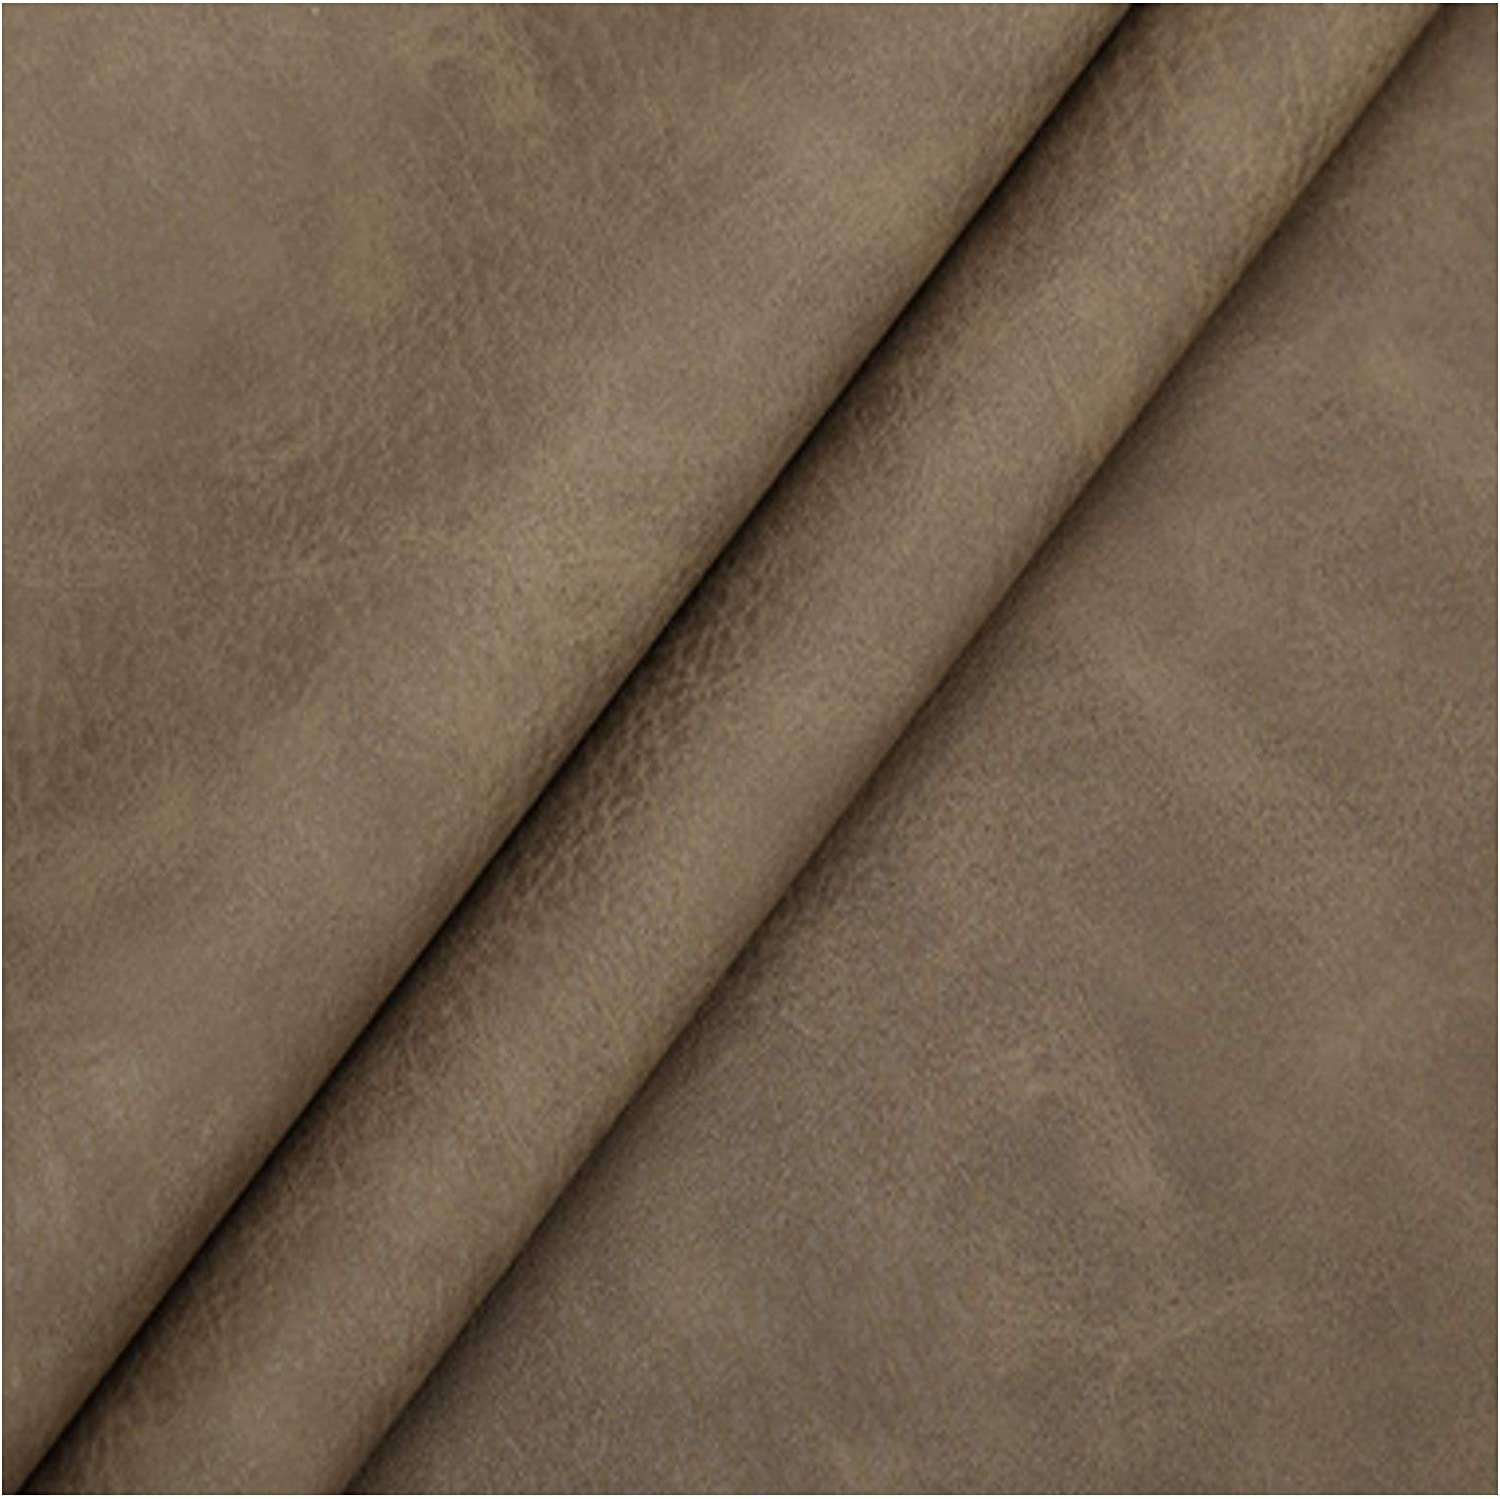 ZHIHEHE Faux Leather Fabric Sale Leatherette f Popular product Recommendation Synthetic